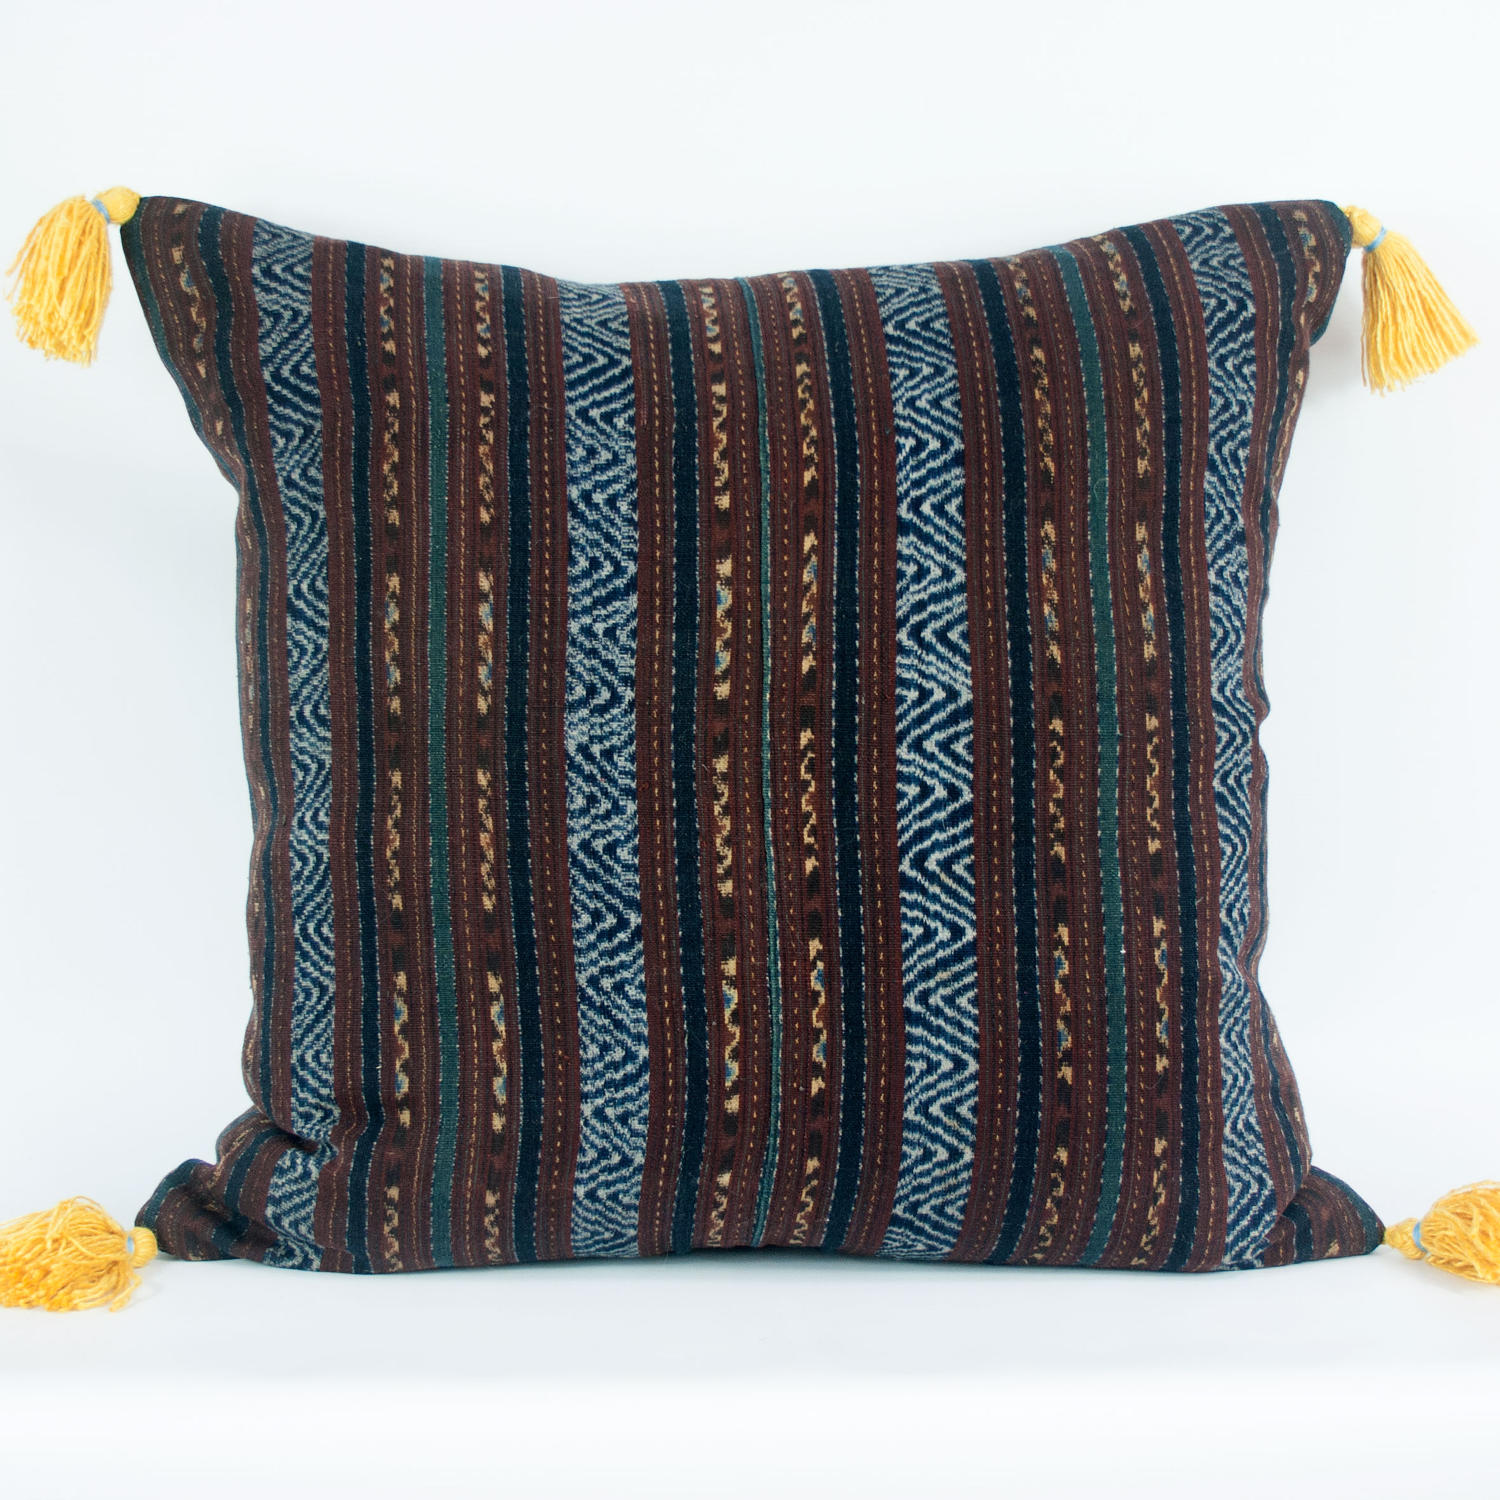 Ikat Cushion with Yellow Tassels